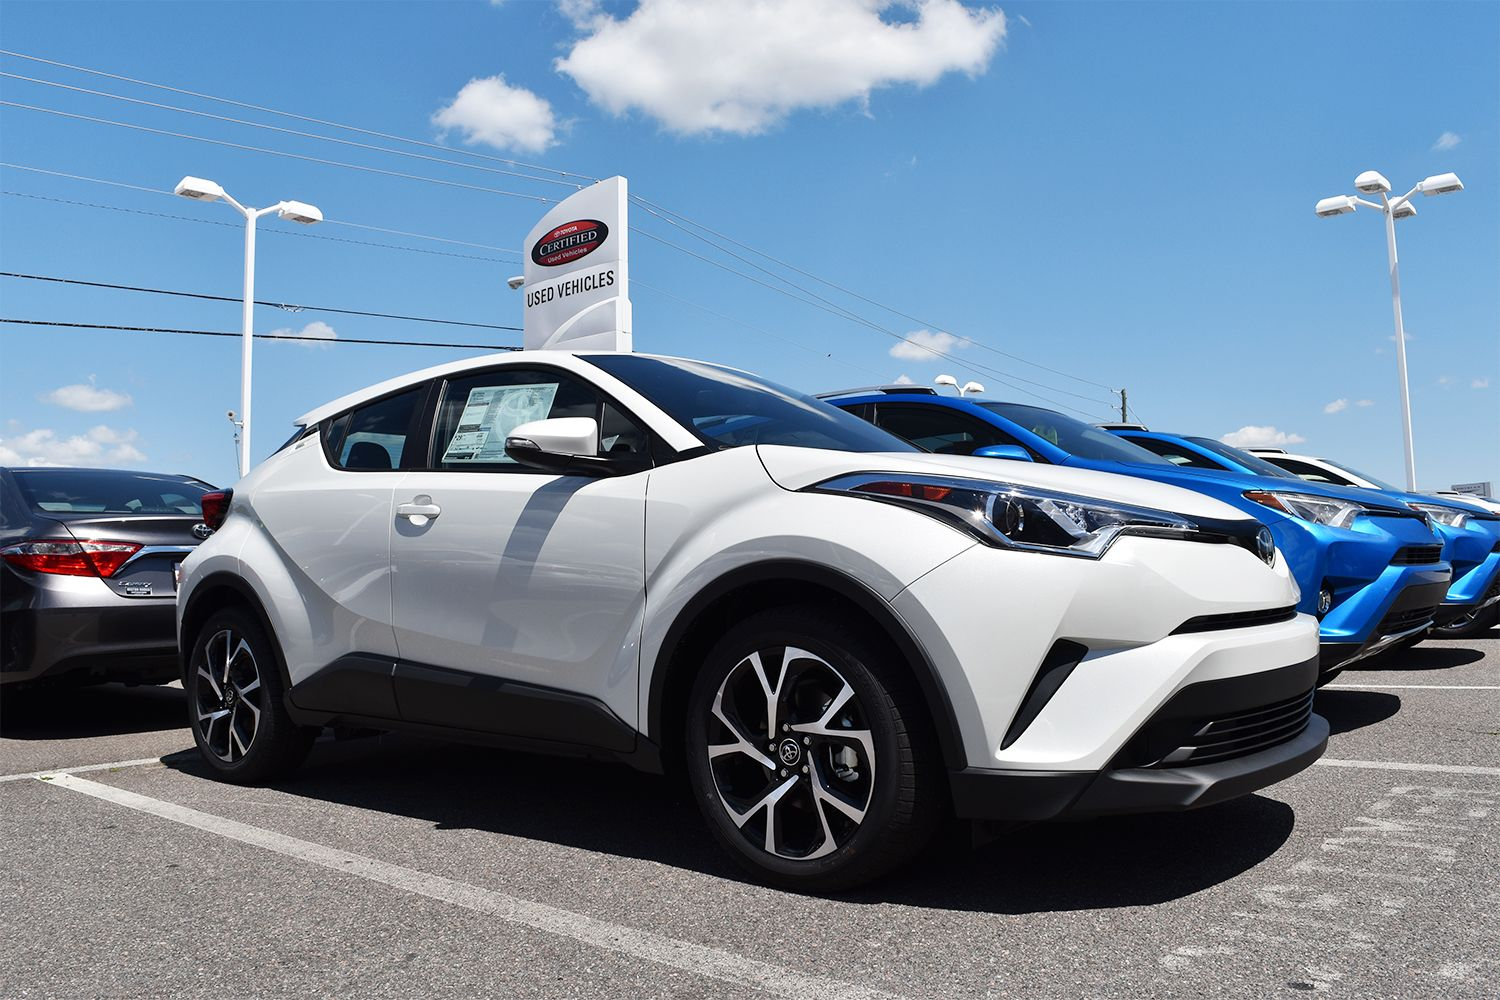 Introducing an all new Toyota. Meet the 2018 CHR, now on